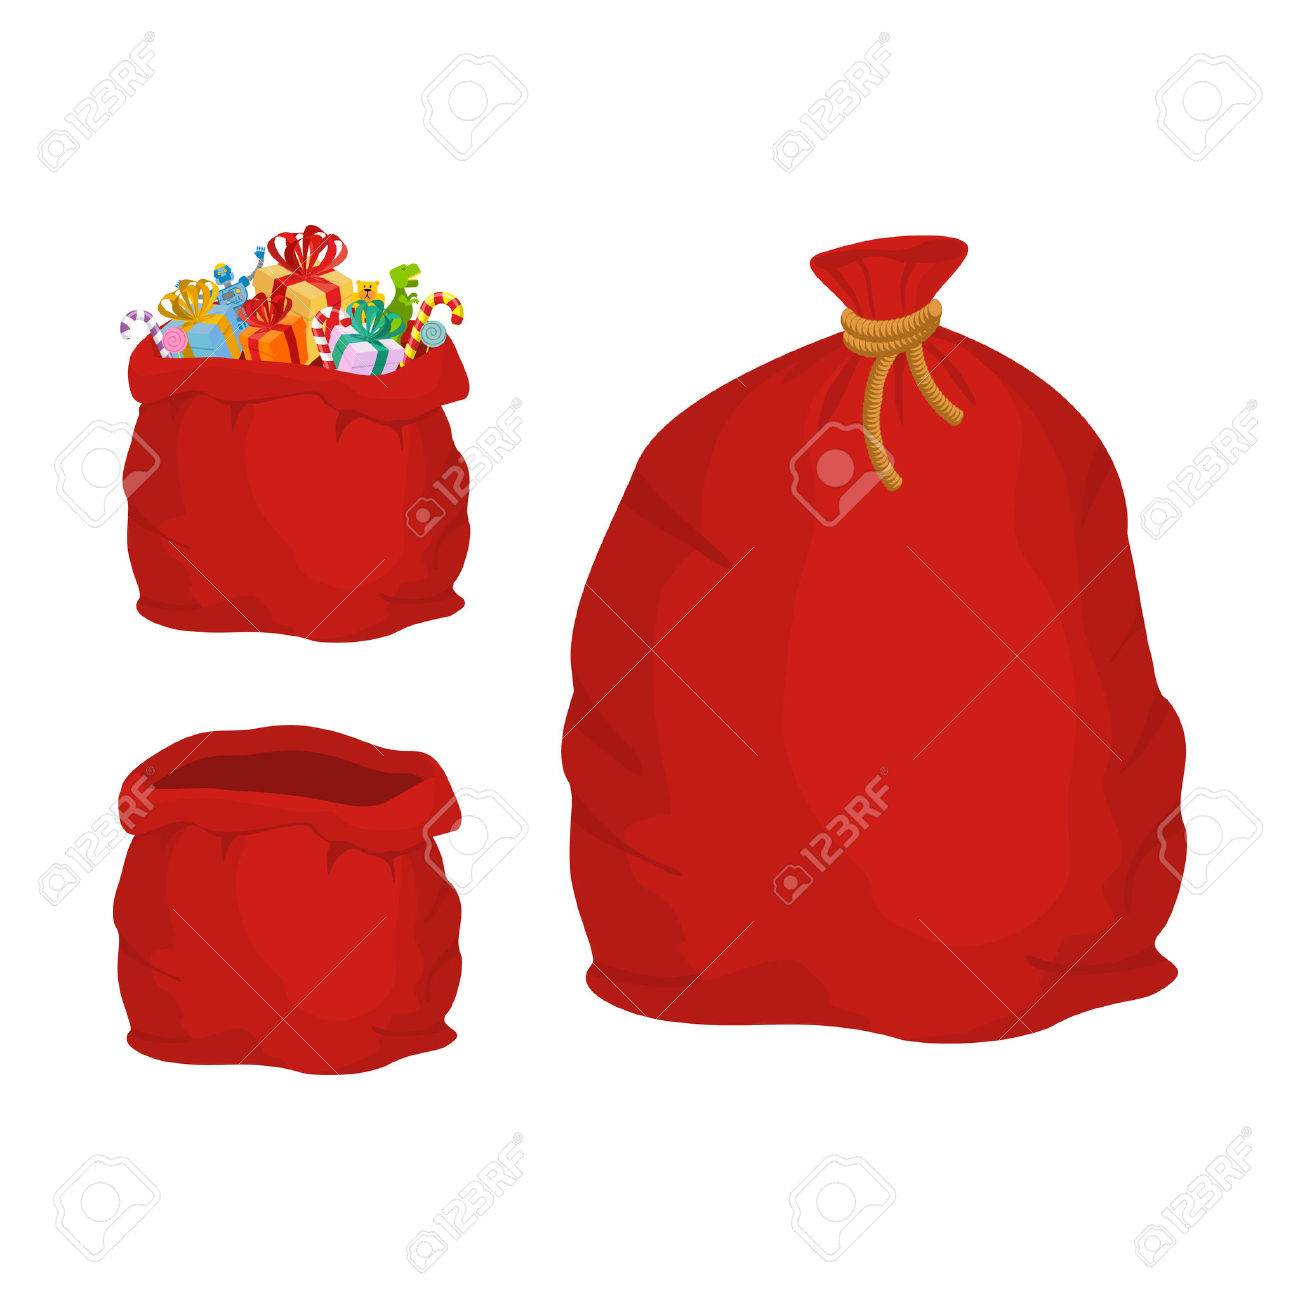 Red sack. Large holiday bag Santa Claus for gifts. Big bagful for new year and Christmas - 64467272